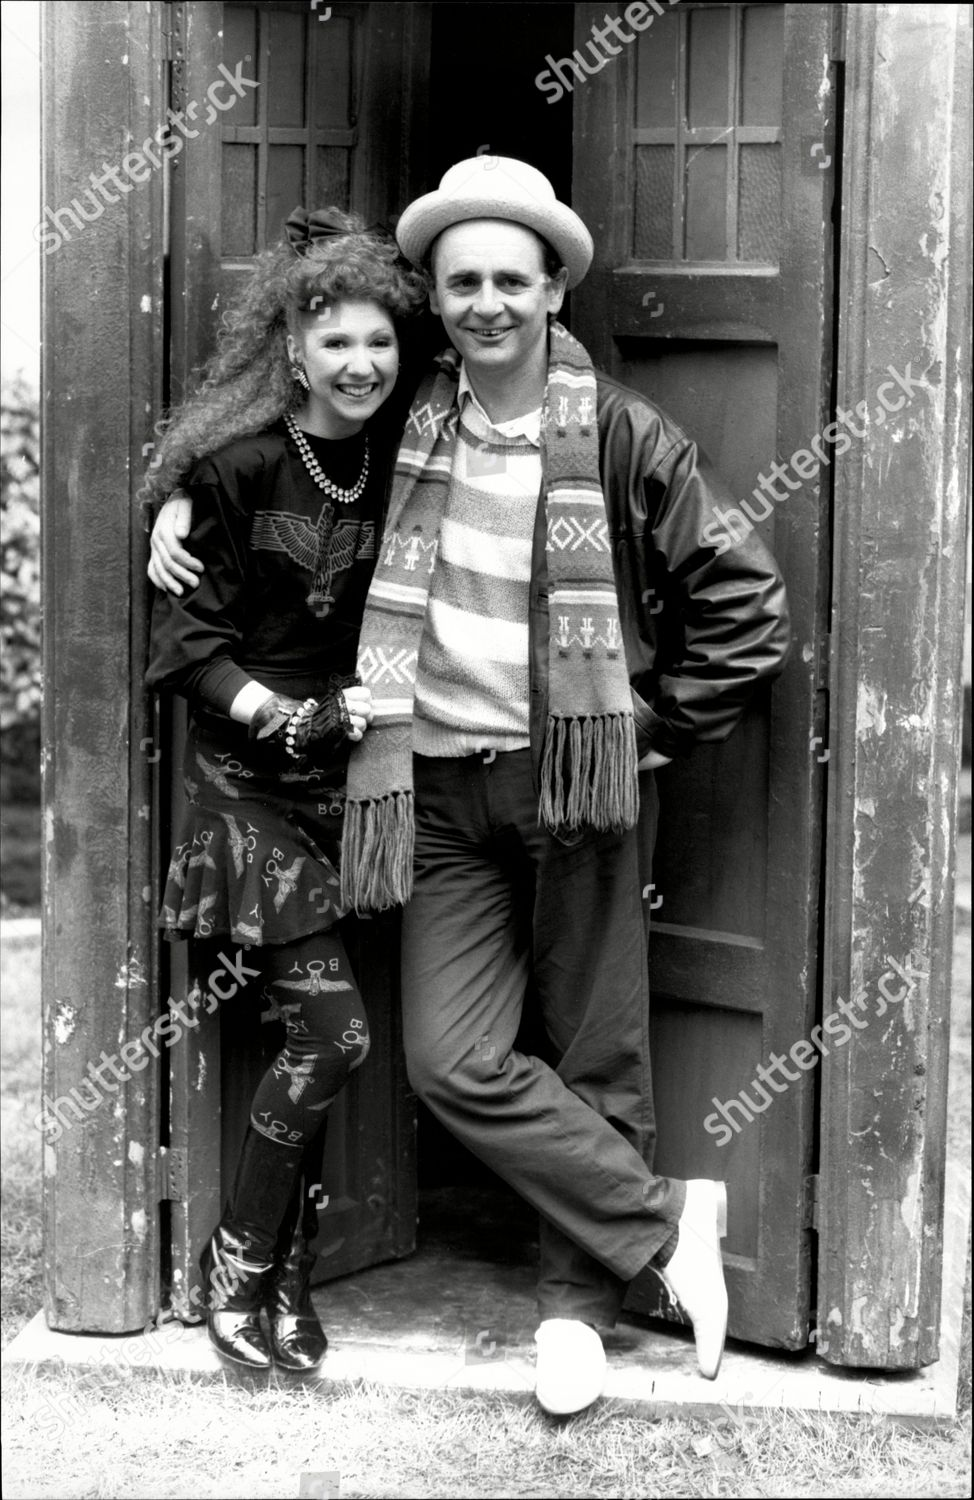 the-new-dr-who-shakespearean-actor-sylvester-mccoy-with-bonnie-langford-aboard-the-tardis-in-london-he-is-the-7th-dr-who-shutterstock-editorial-1446077a.jpg